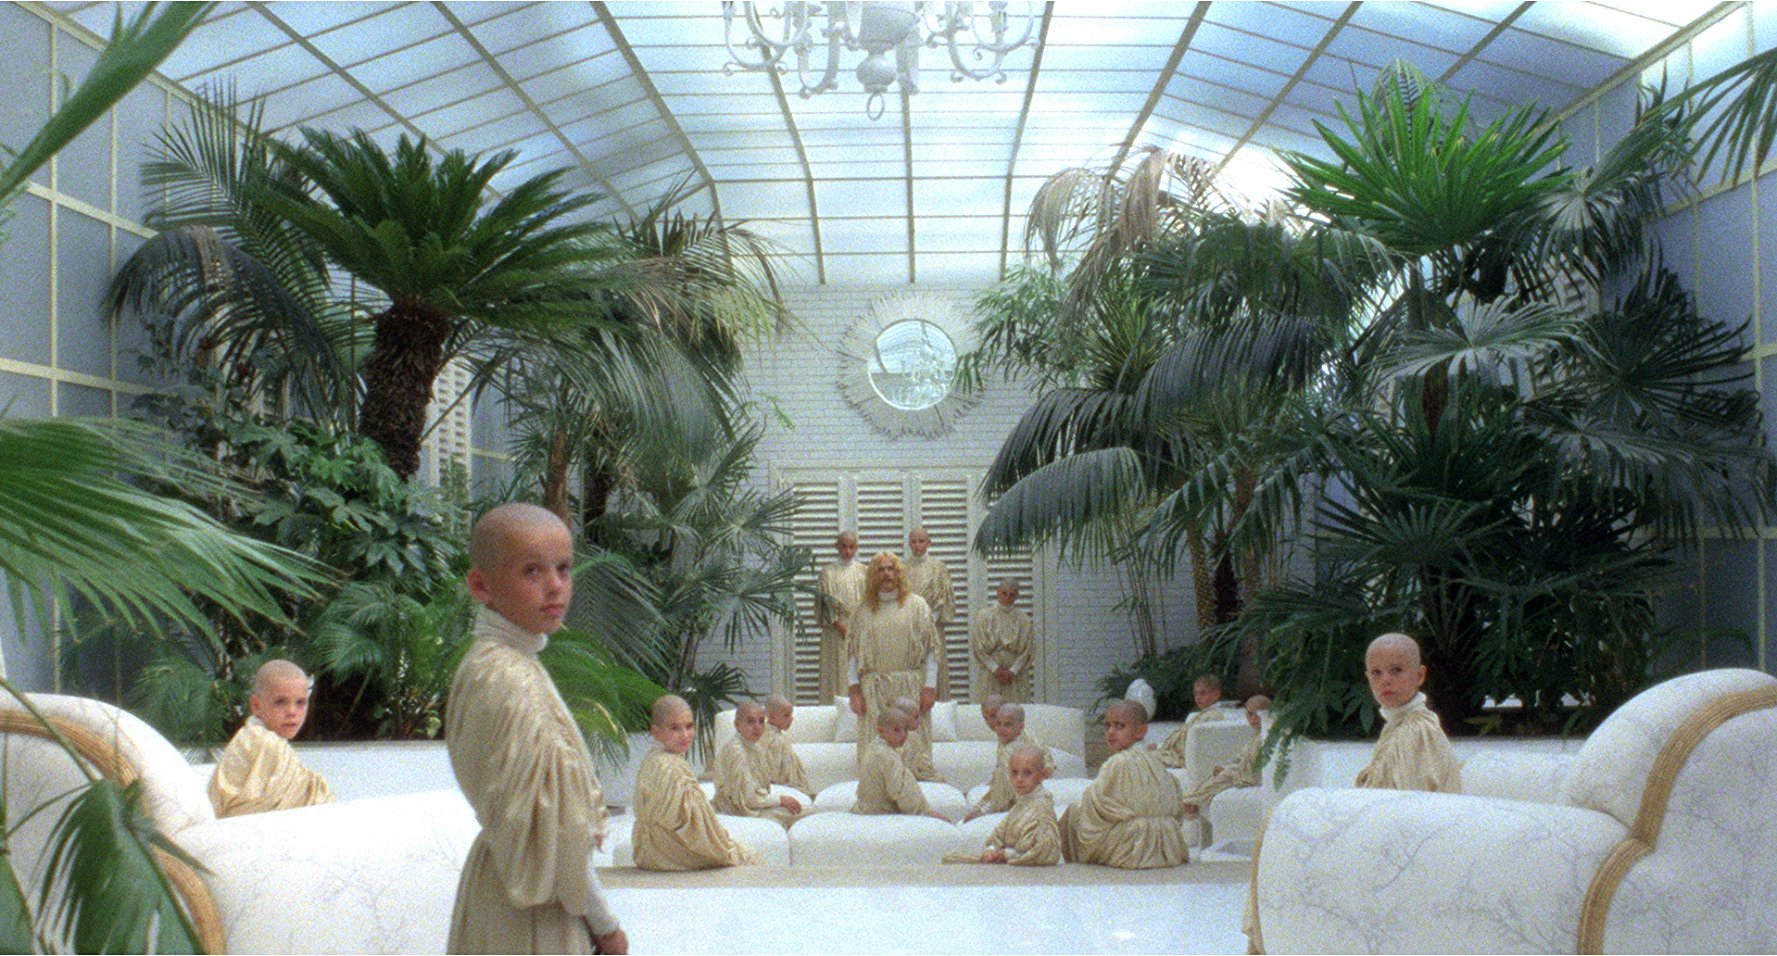 Bald children in The Visitor